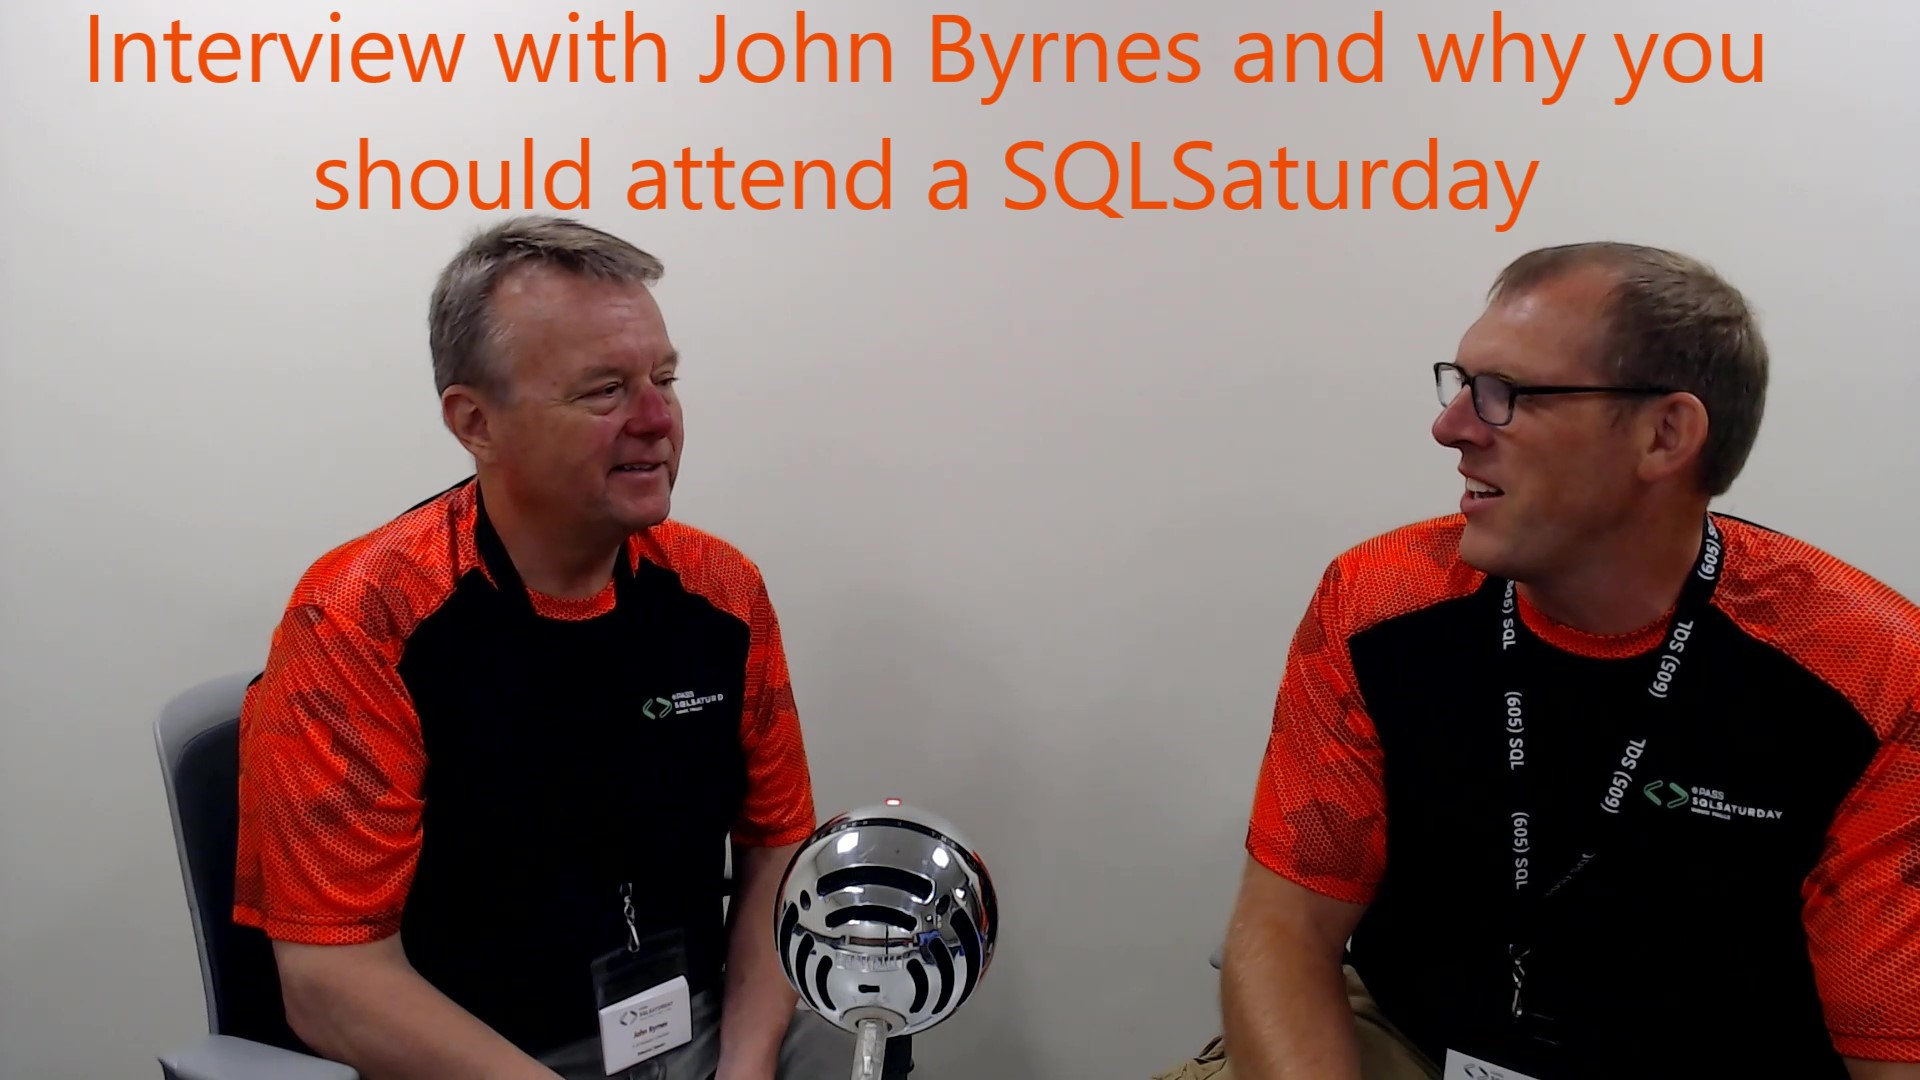 John Byrnes Interview on SQLSaturday